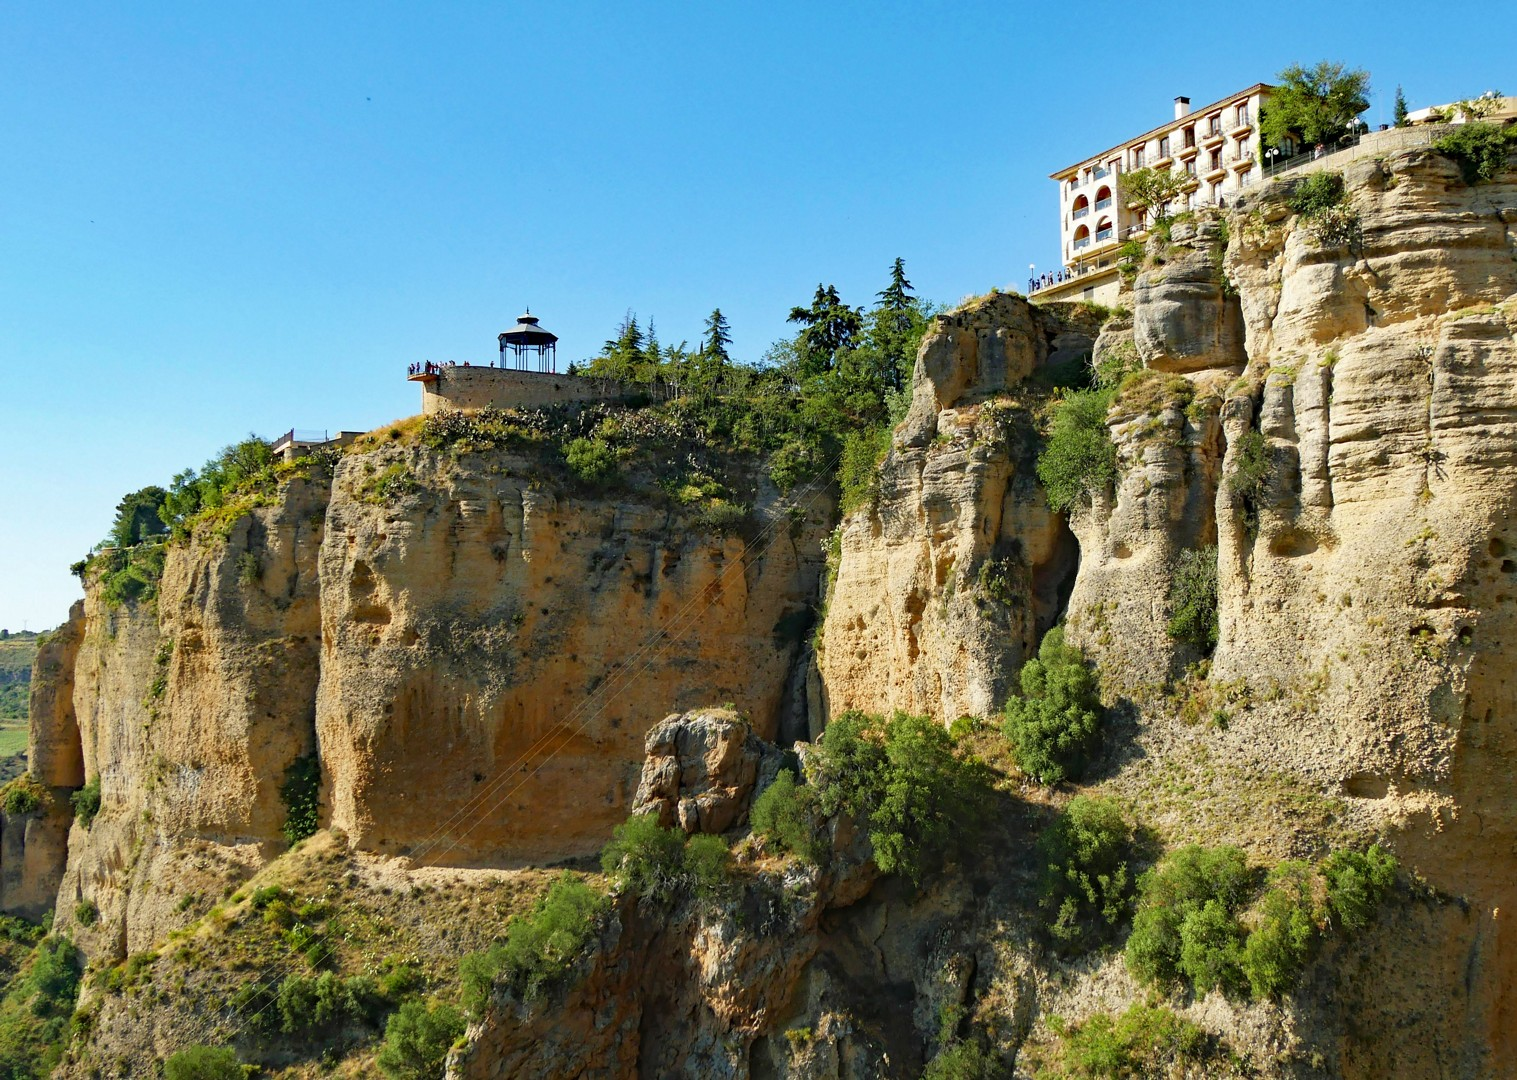 views-of-ronda-road-cycling-trip-spain.jpg - Spain - Basque Country to Andalucia - North to South - 16 Day - Guided Road Cycling Holiday - Road Cycling